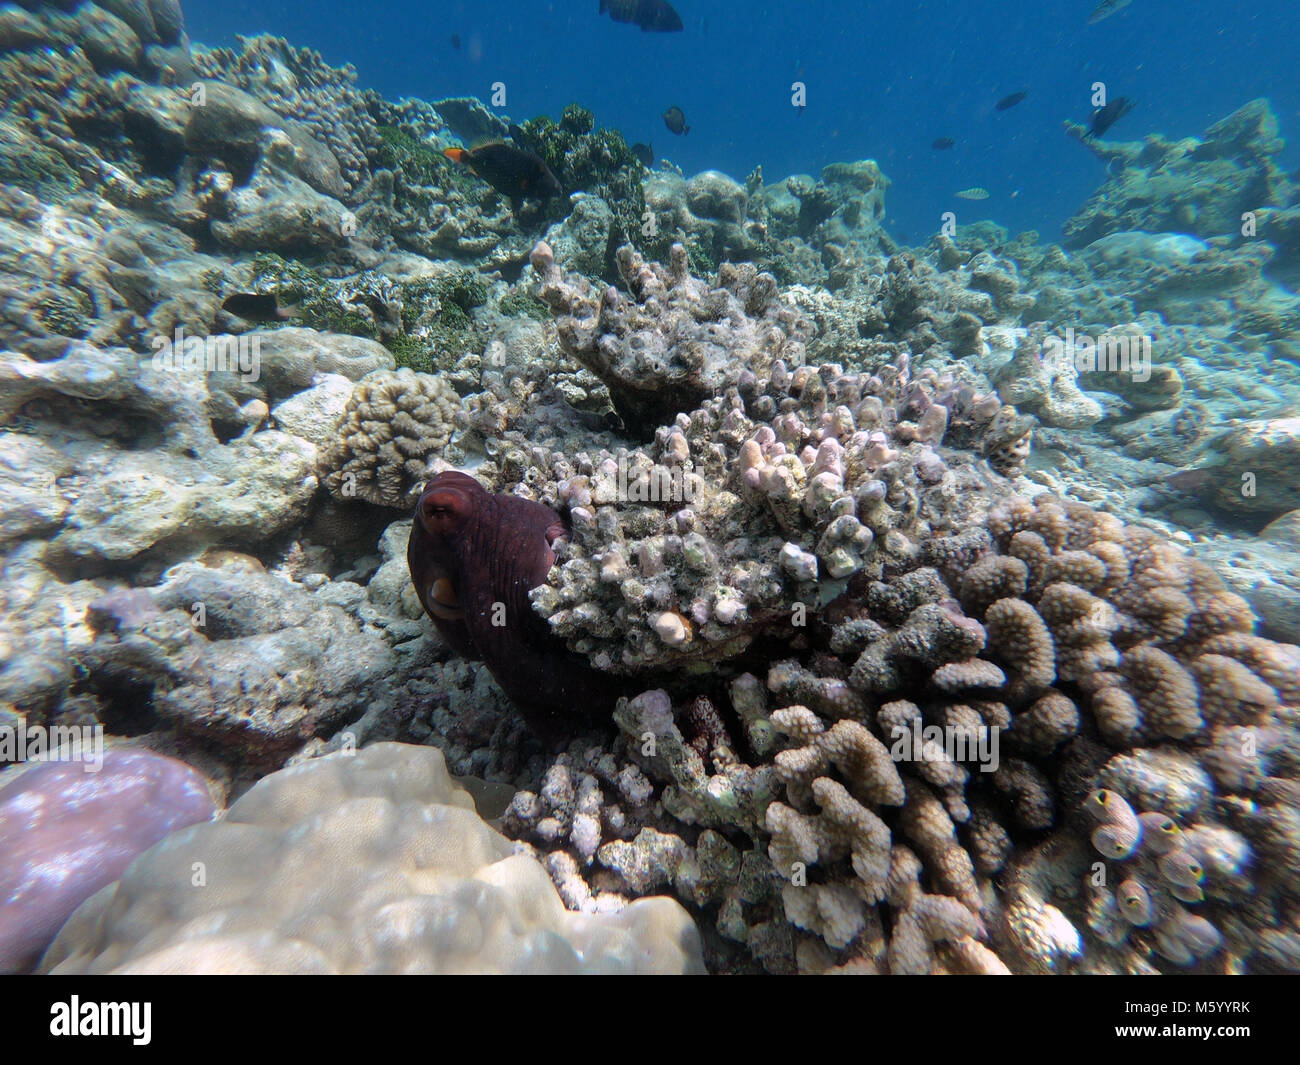 Octopus hiding on coral reef in the Maldives, Pacific Ocean. Natural environment, nature, sea ecology, mimicry - Stock Image